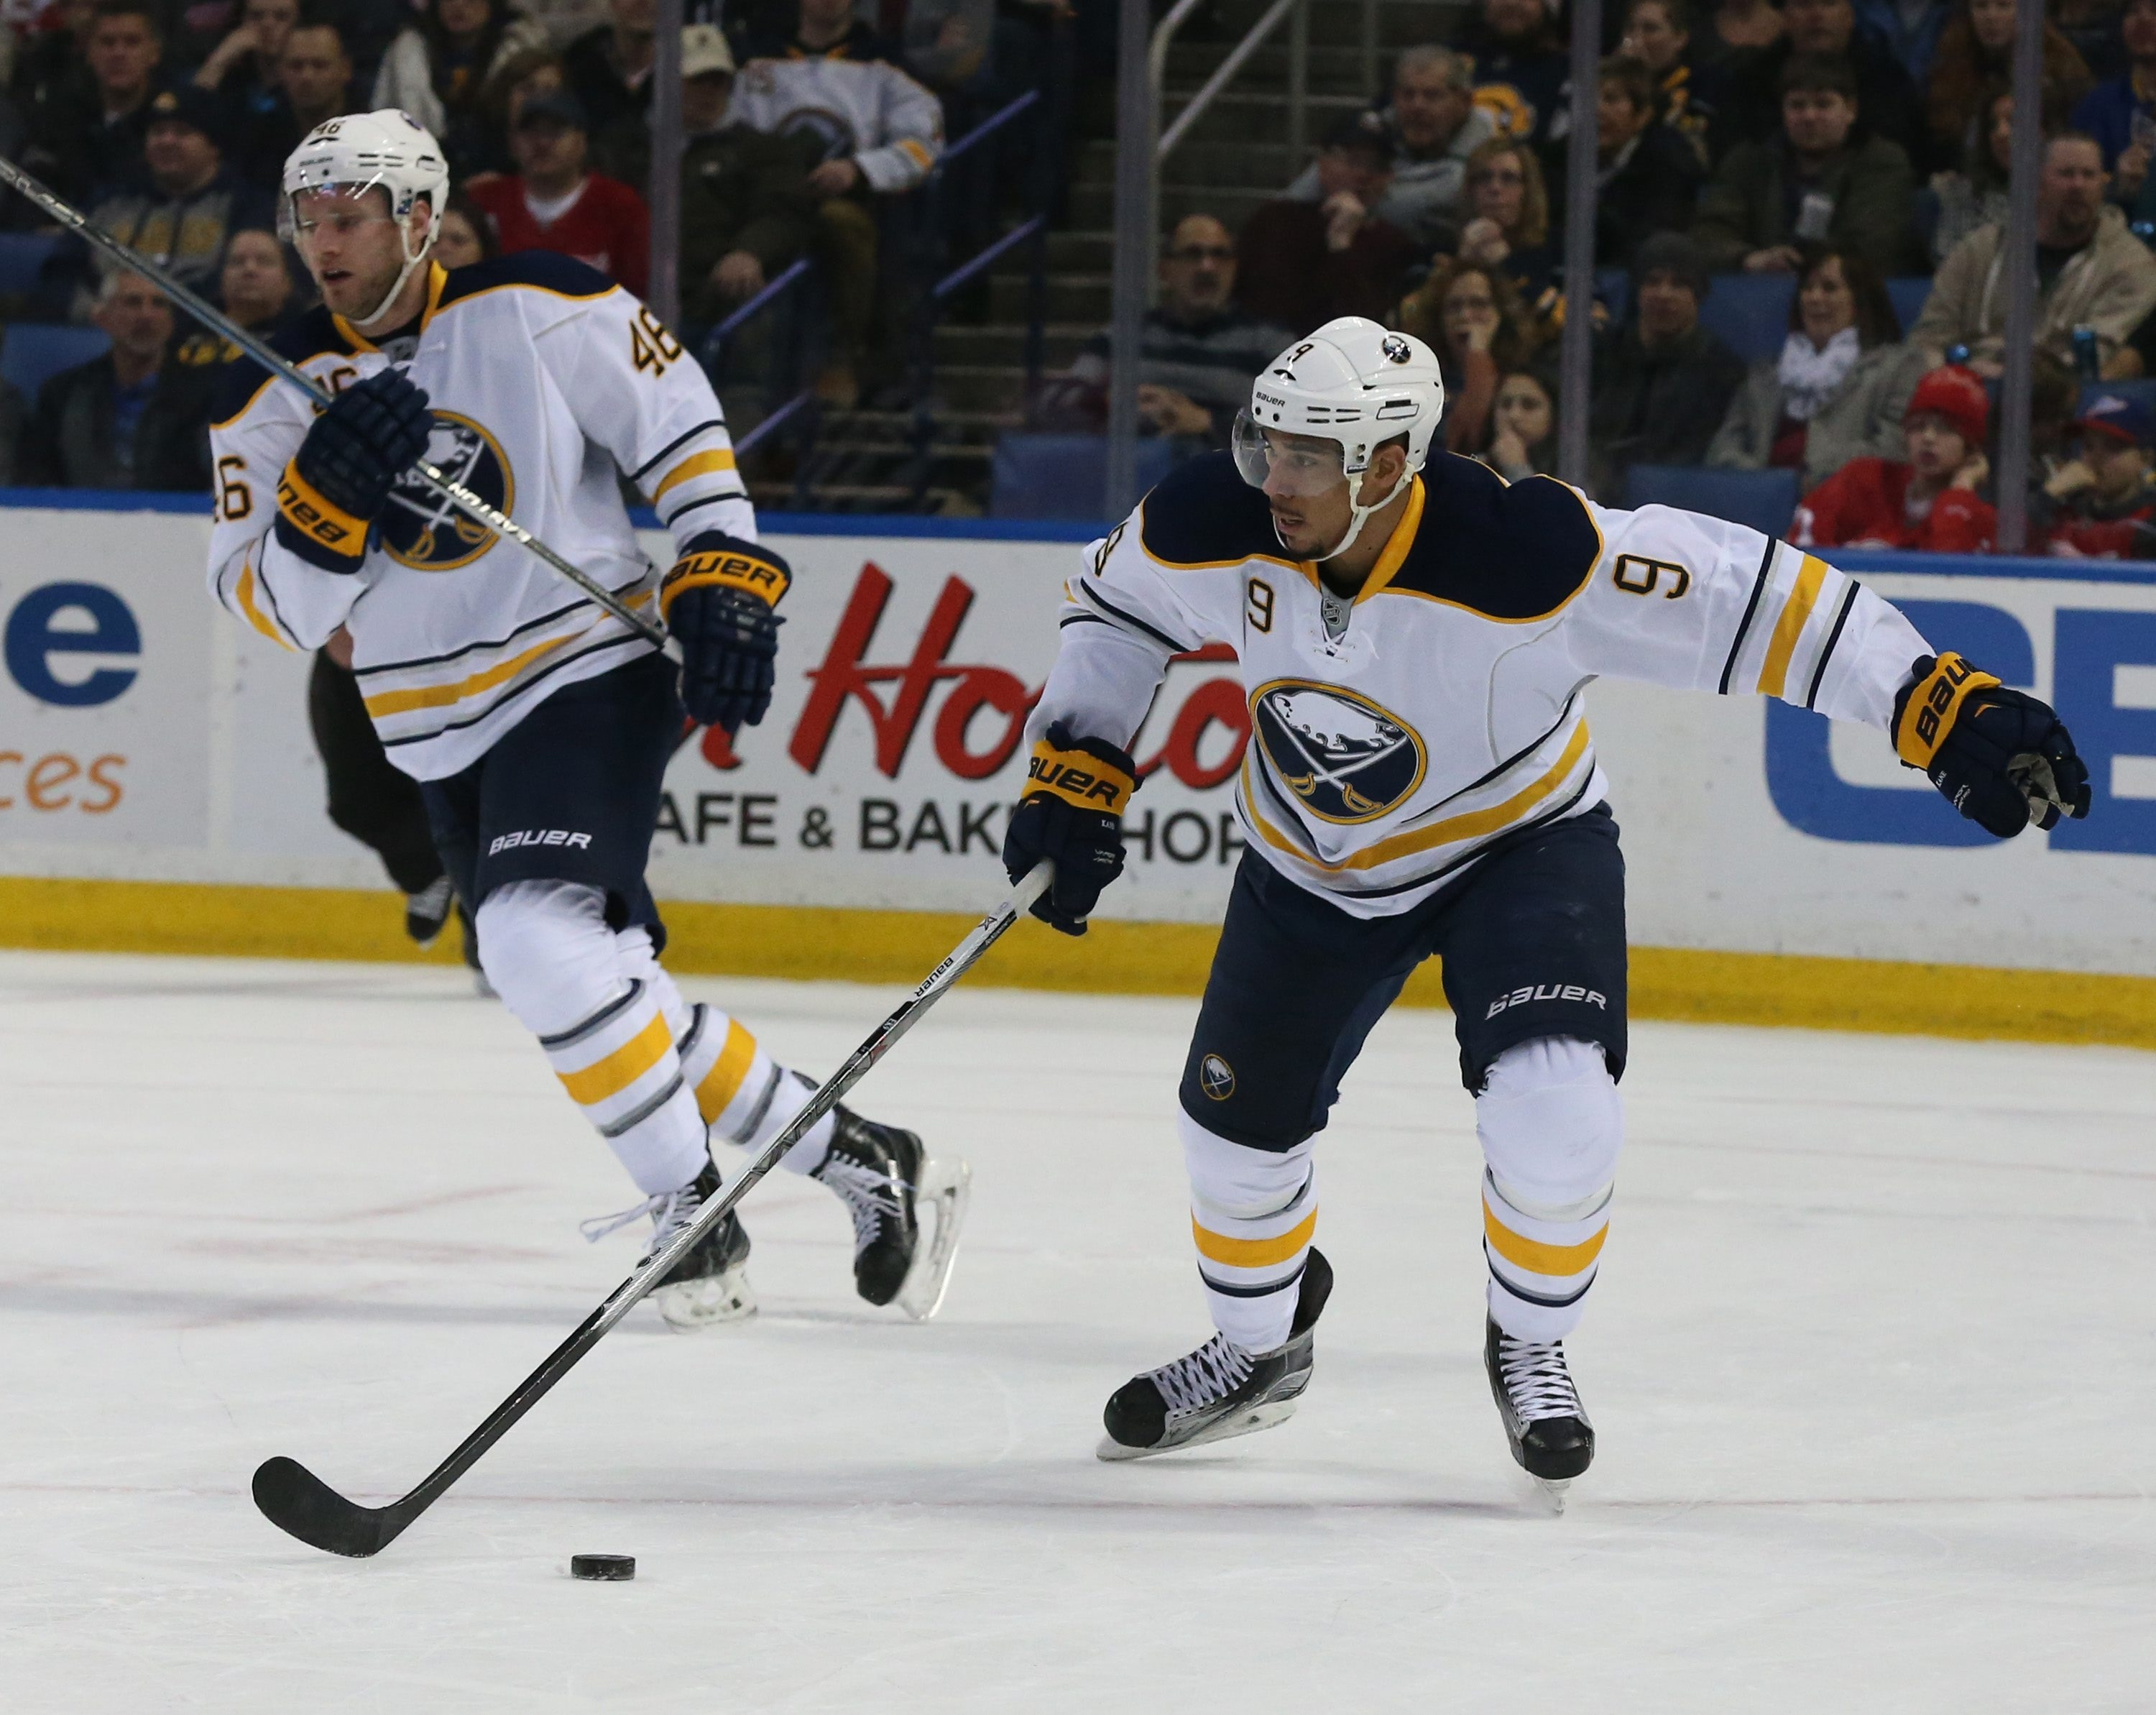 Buffalo Sabres left wing Evander Kane (9) skates with the puck in the first period at First Niagara Center in Buffalo, NY on Friday, Jan. 22, 2016.  (James P. McCoy/ Buffalo News)